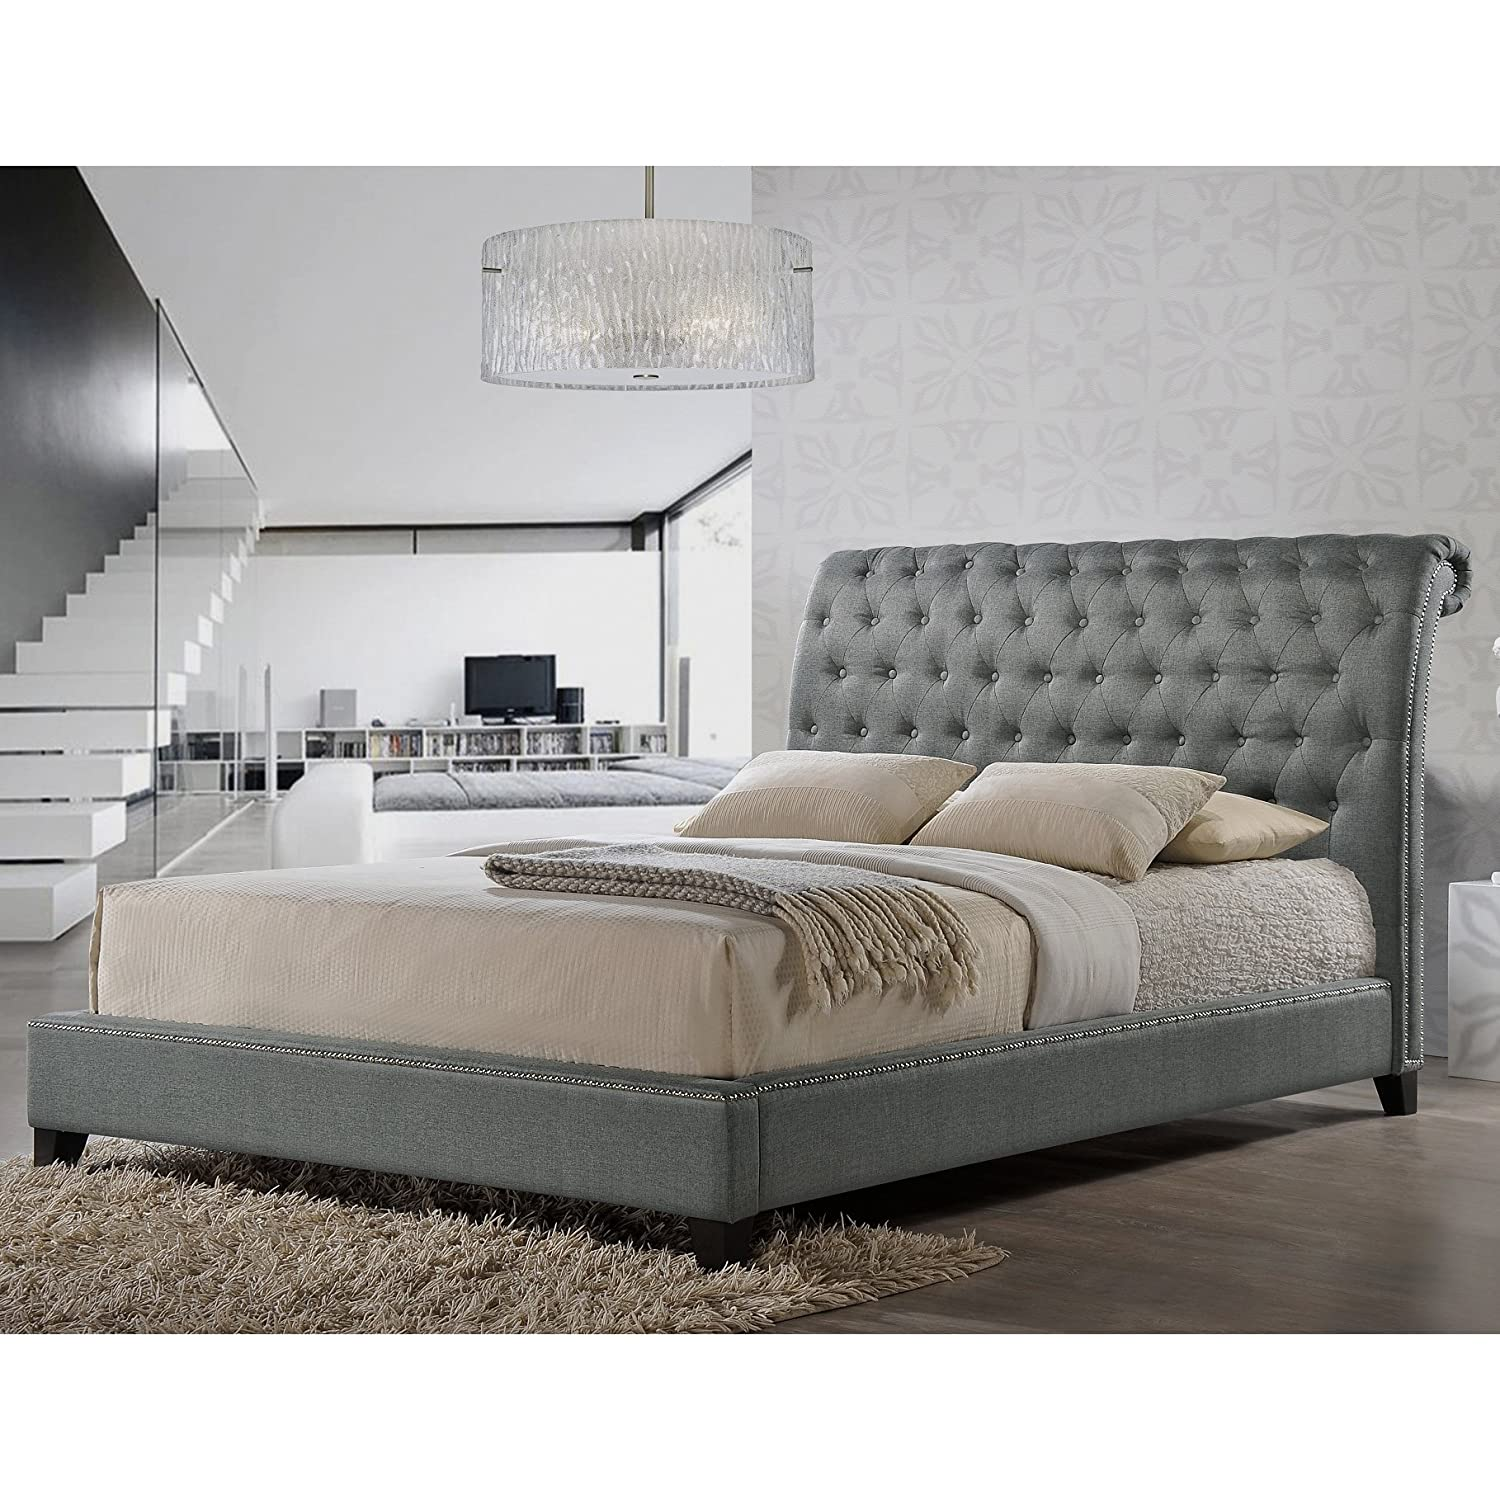 amazoncom baxton studio jazmin tufted modern bed with upholsteredheadboard king light beige kitchen  dining. amazoncom baxton studio jazmin tufted modern bed with